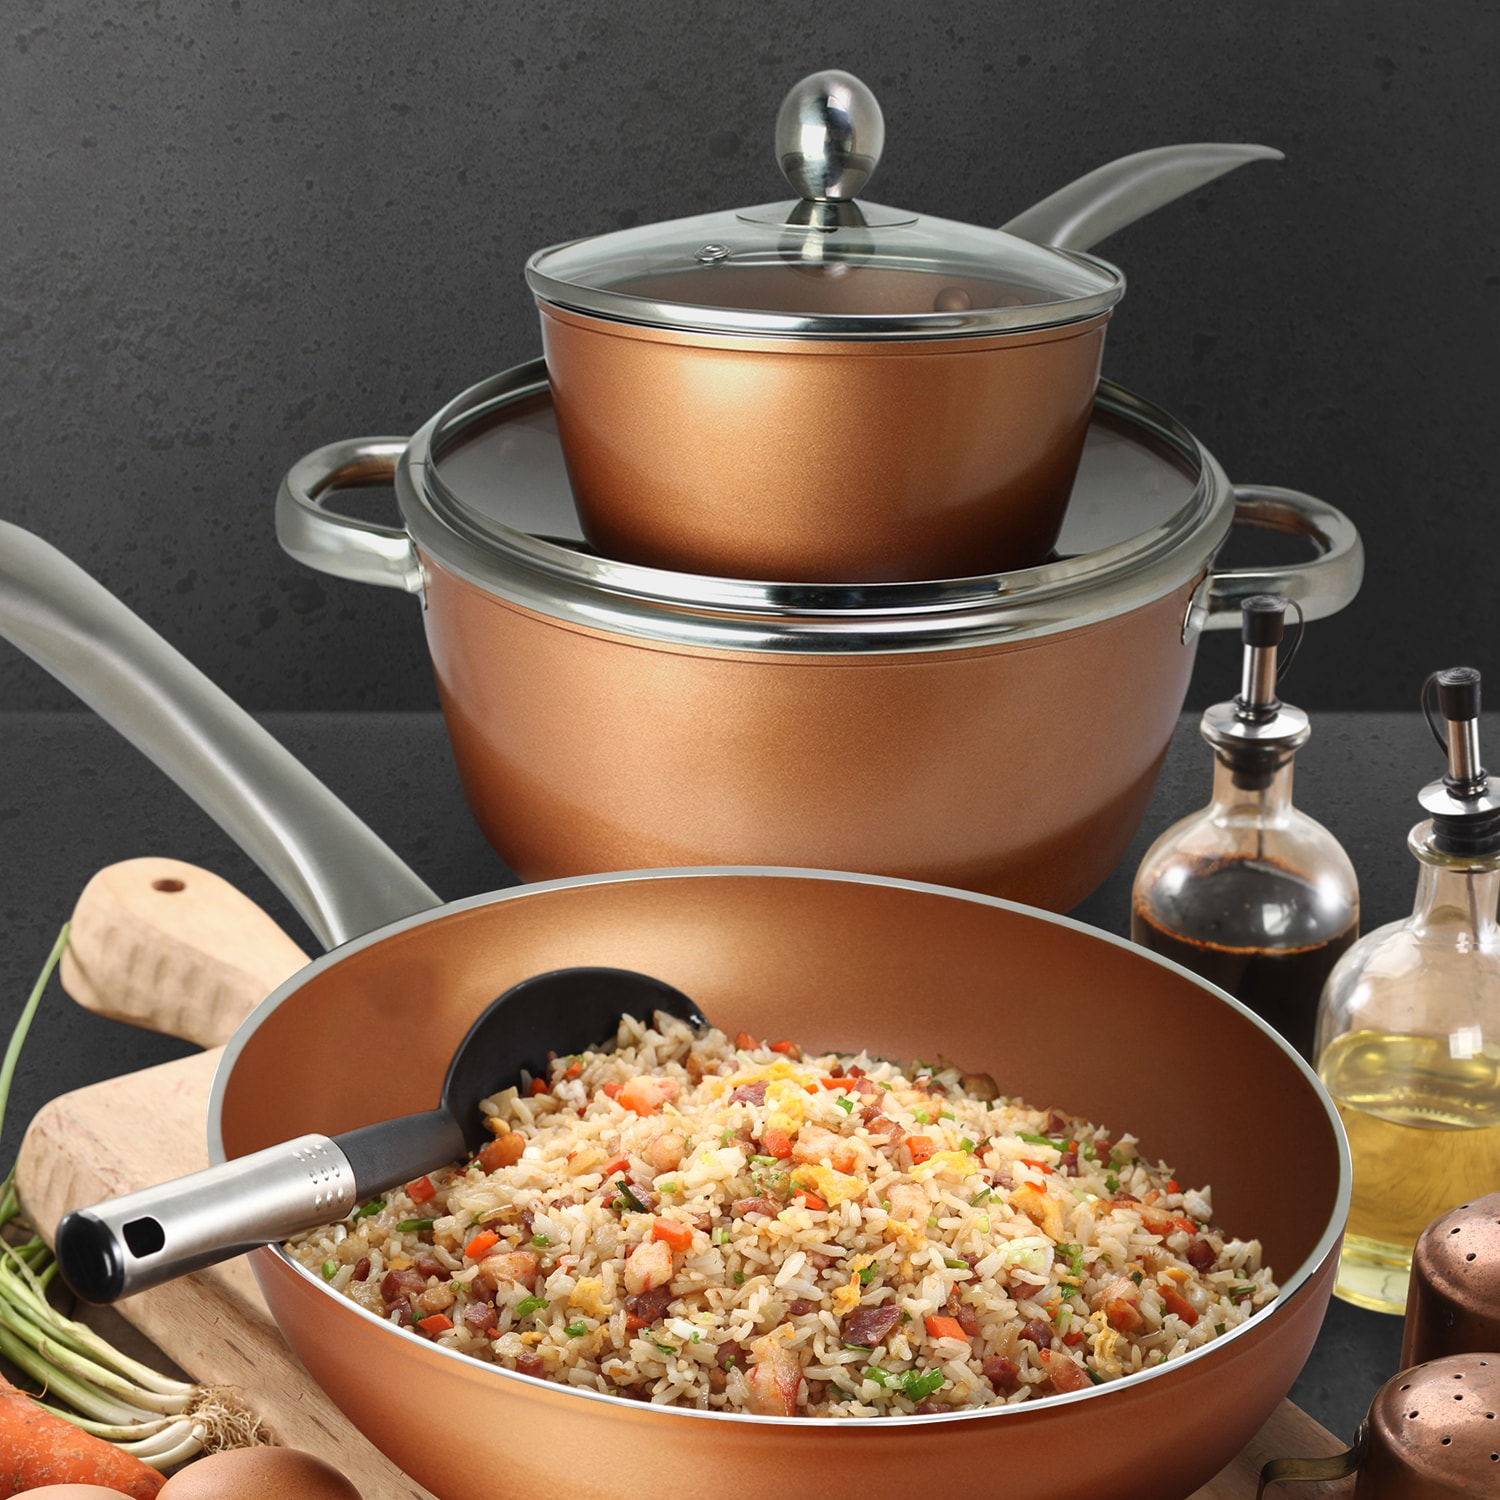 Masflex Forged Copper Aluminum Non-stick Induction Cookware